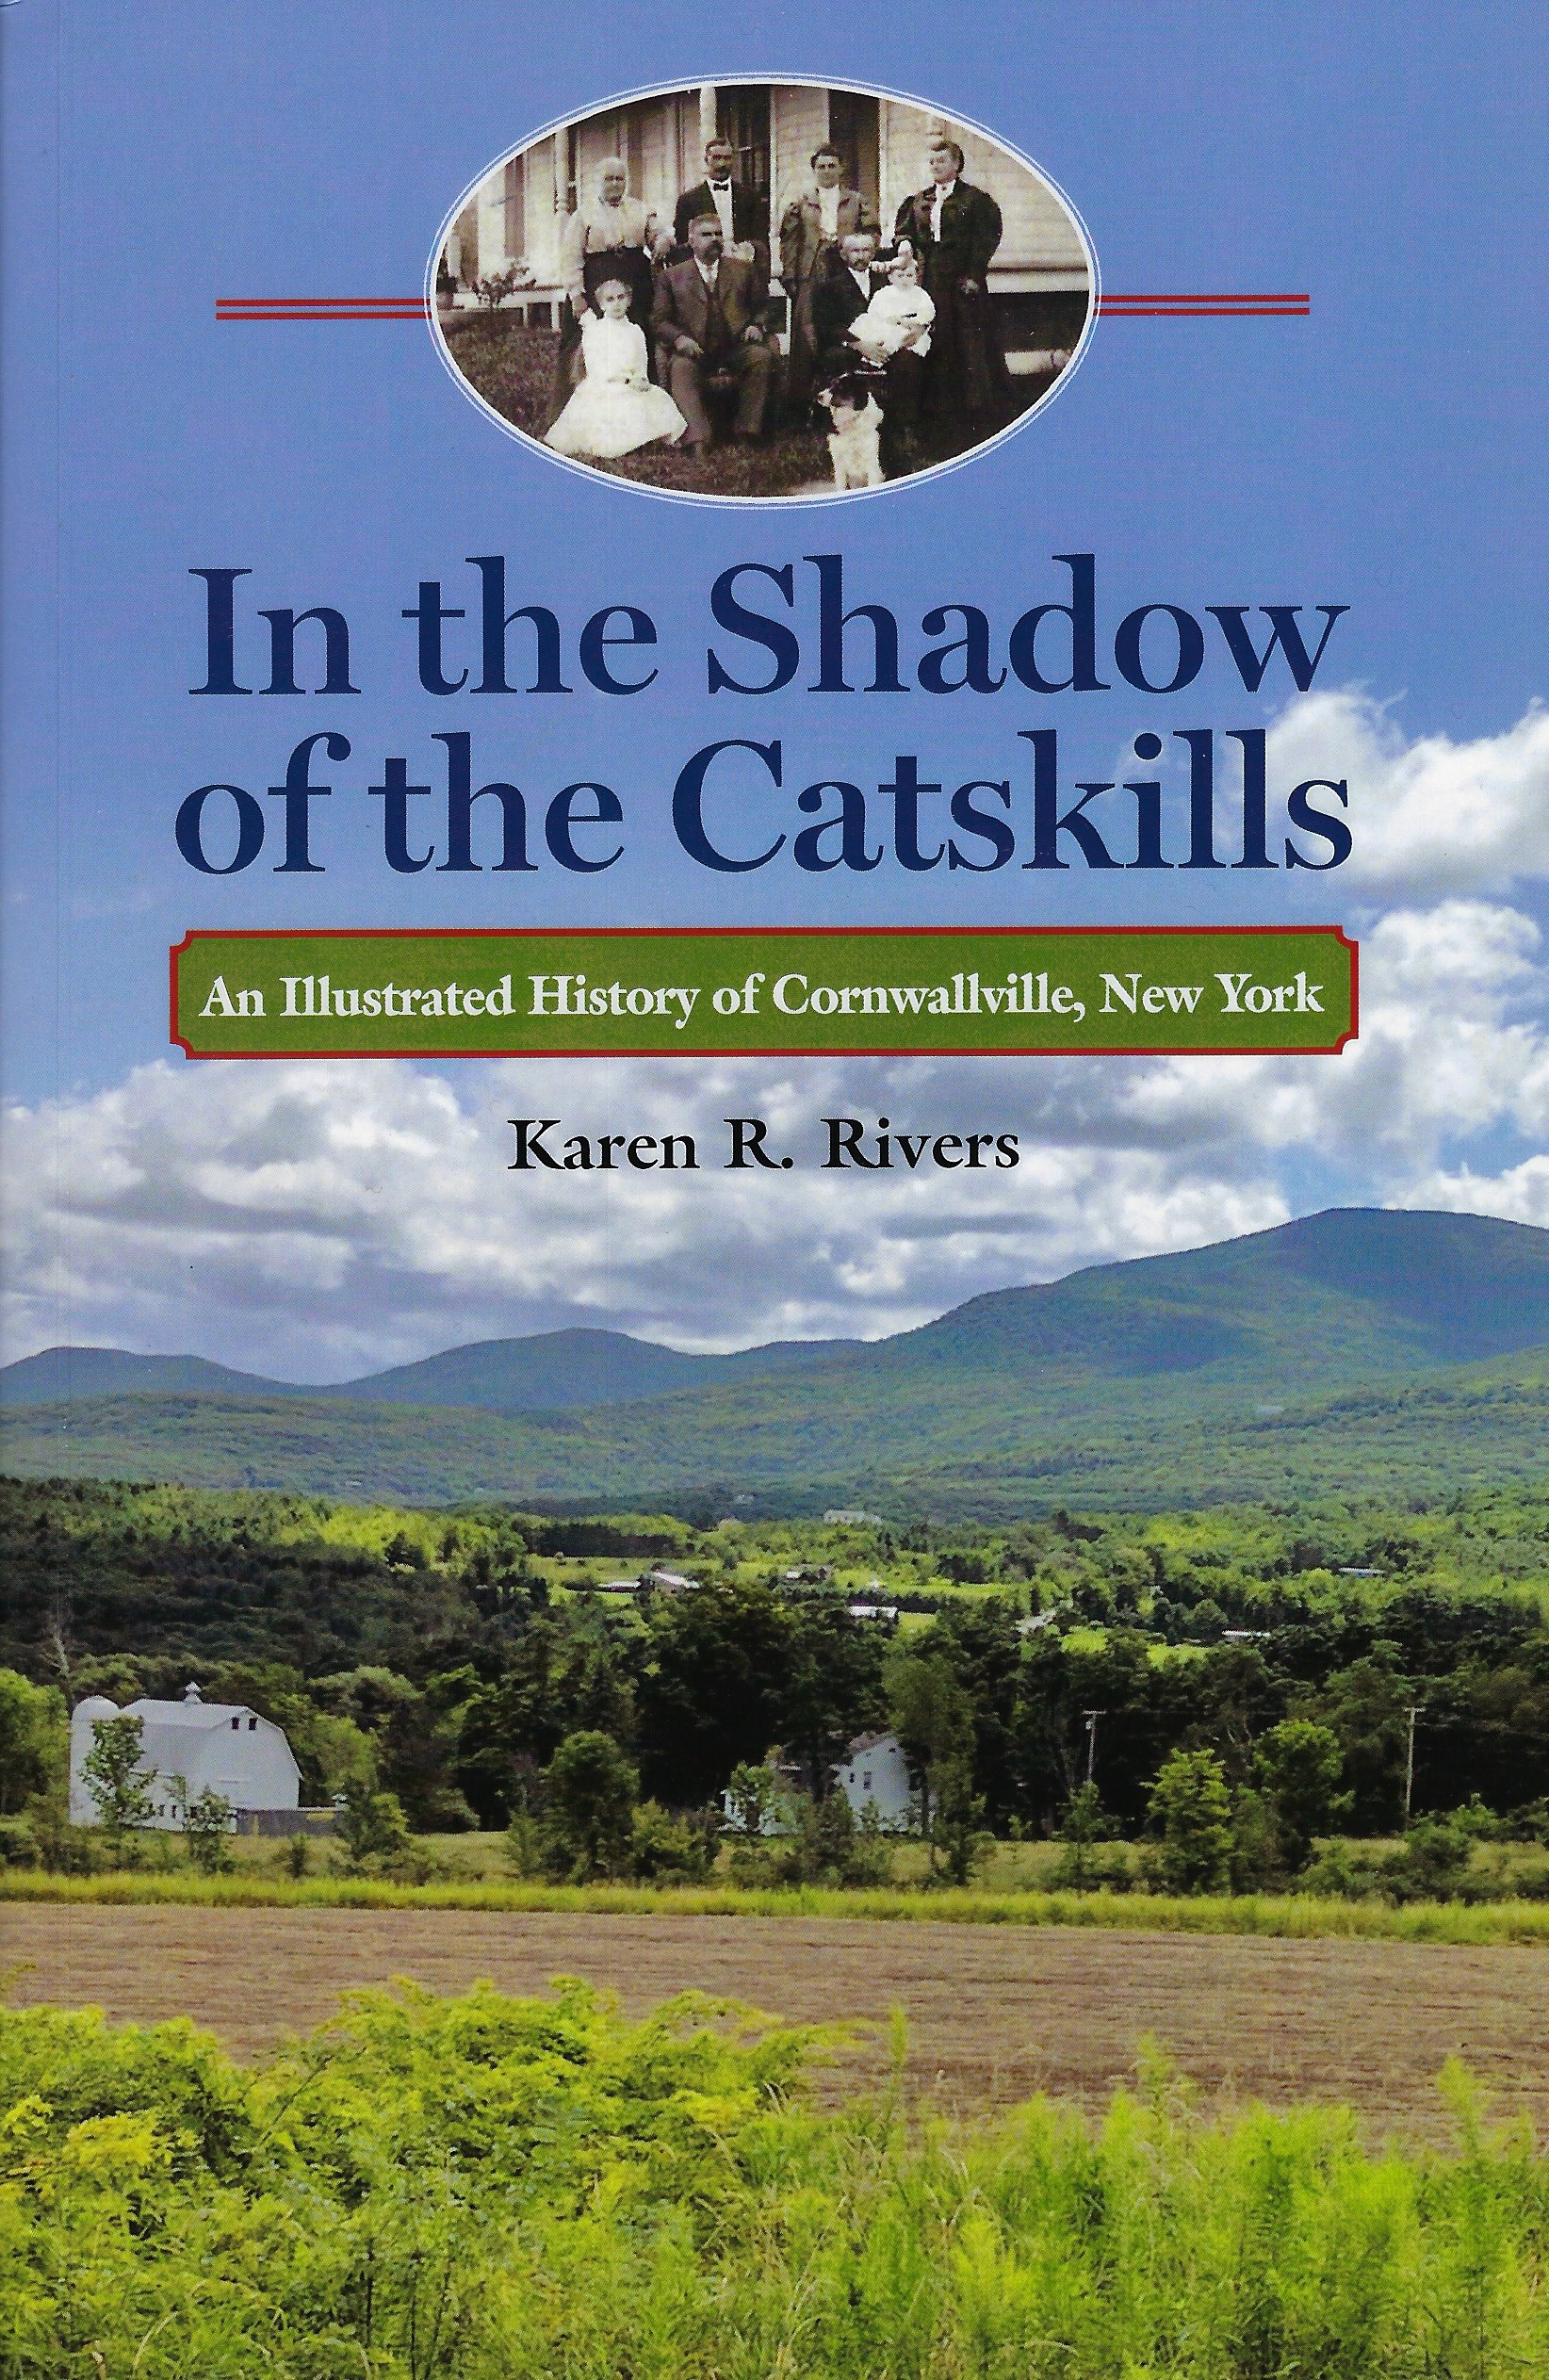 In the Shadow of the Catskills